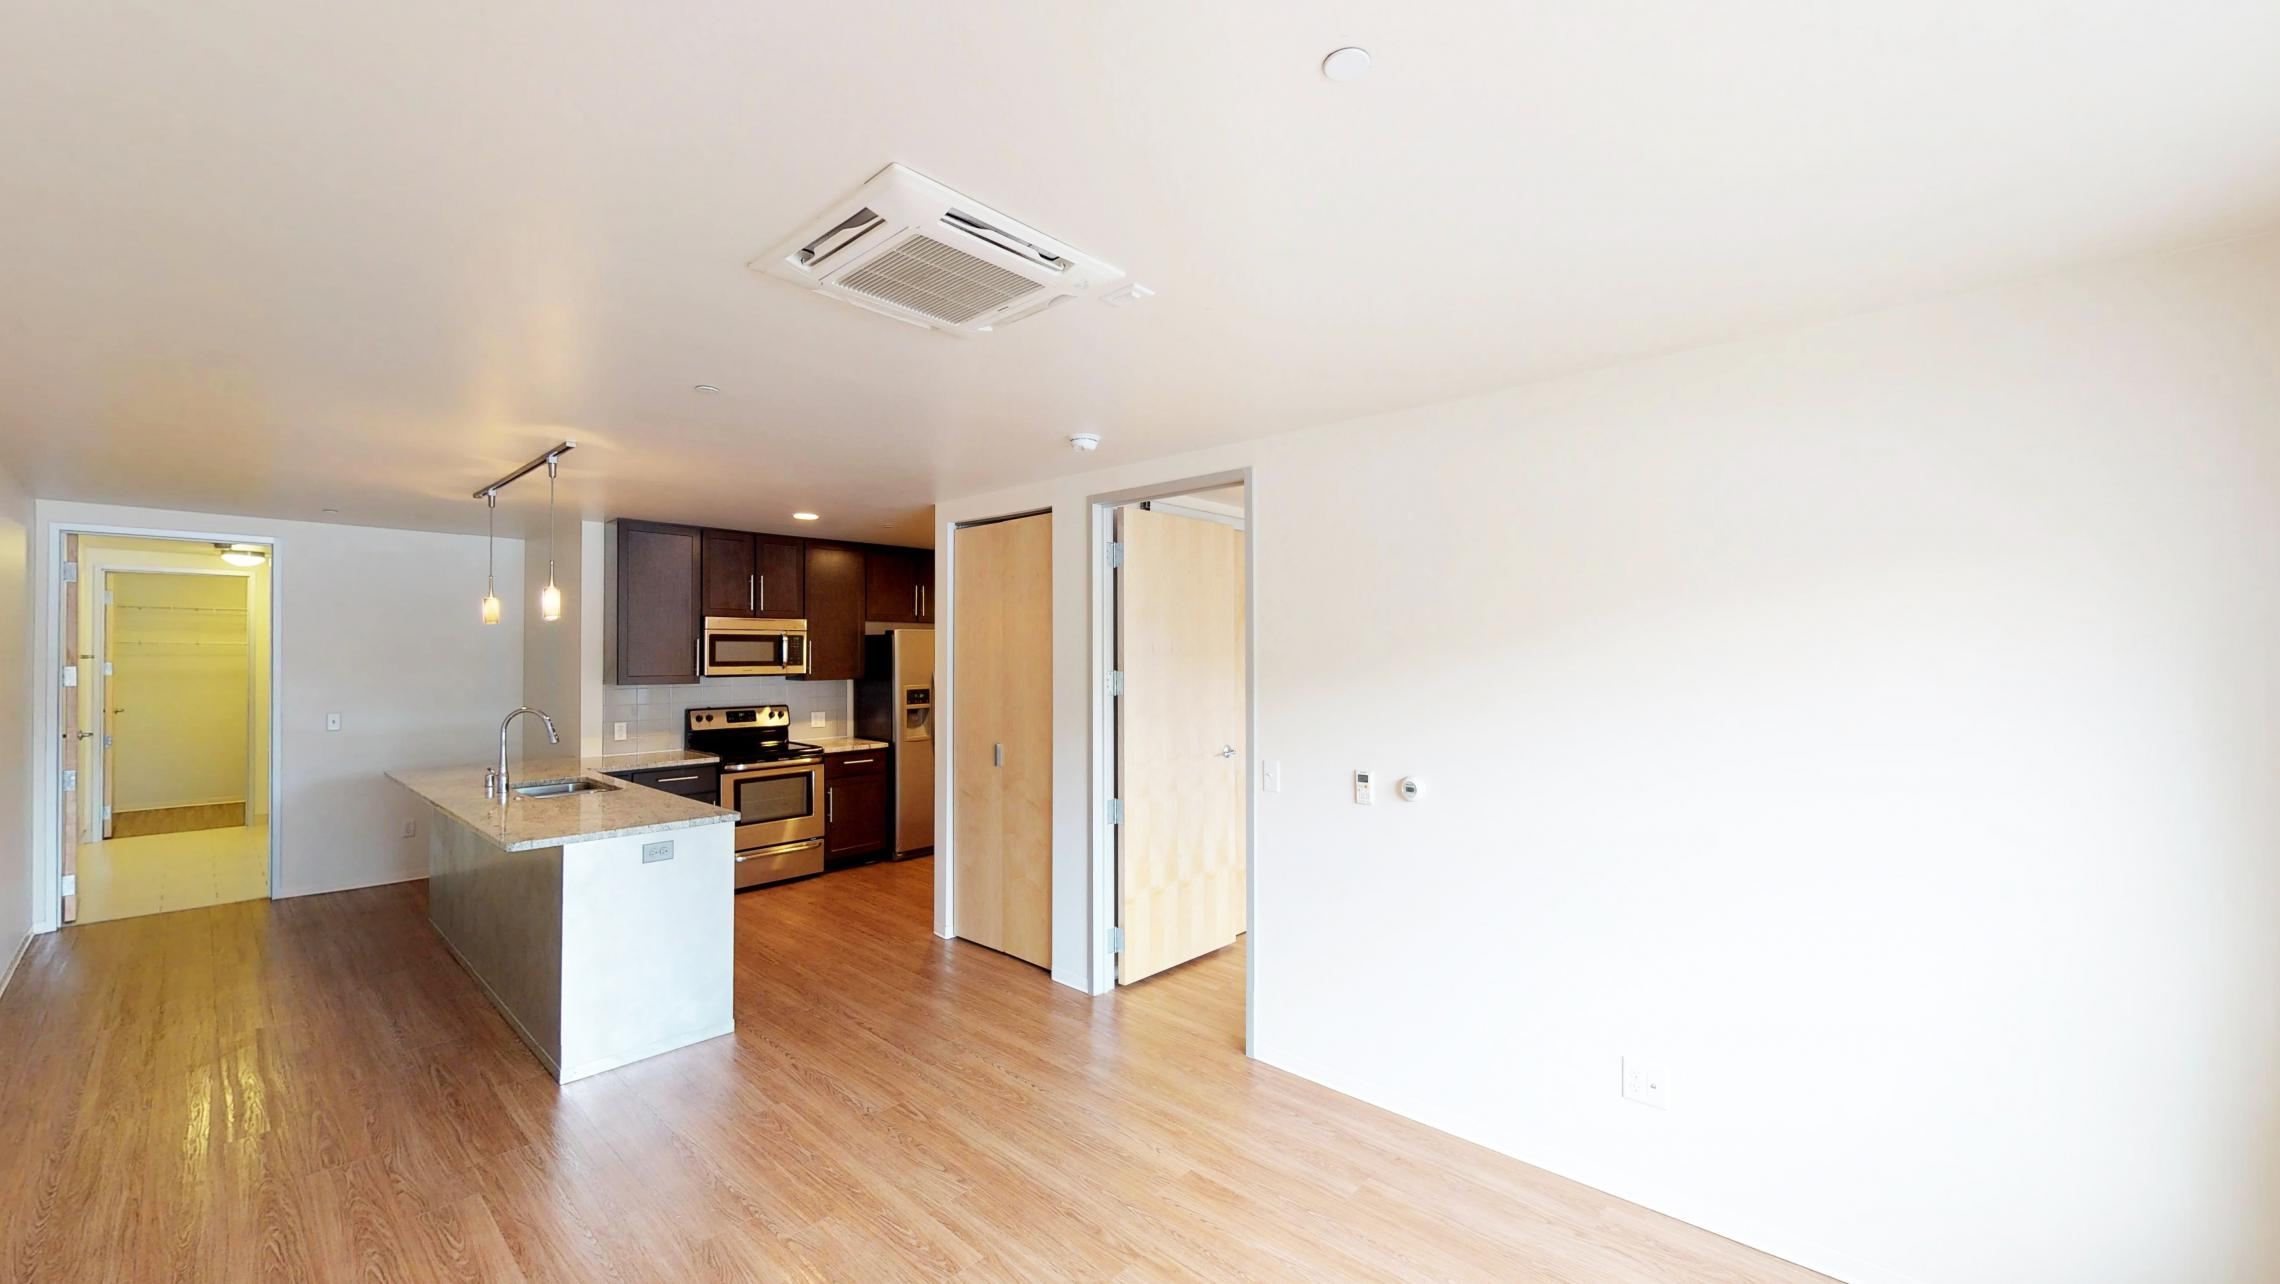 Capitol-Hill-Apartment-306-Living room- kitchen -one bedroom-capitol view-downtown-luxury-modern.jpg